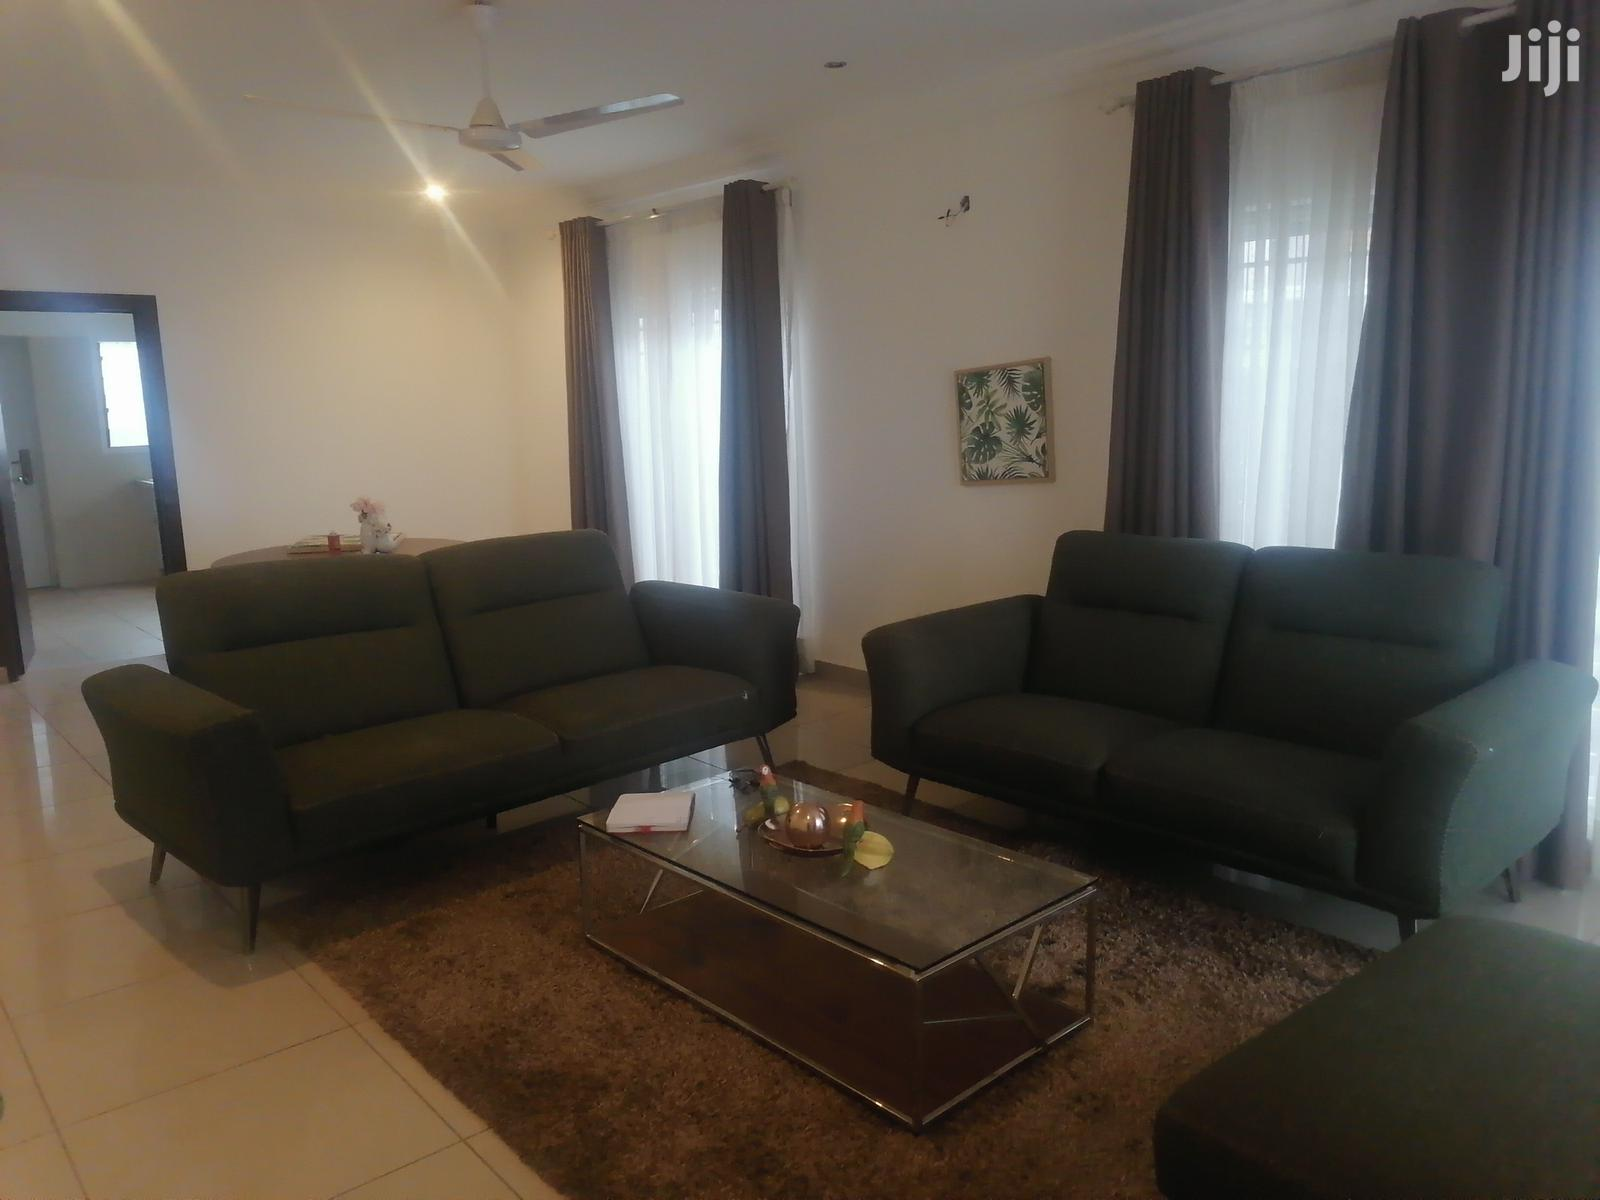 Furnished 3 Bedroom House For Sale At East Legon Hills | Houses & Apartments For Sale for sale in East Legon, Greater Accra, Ghana